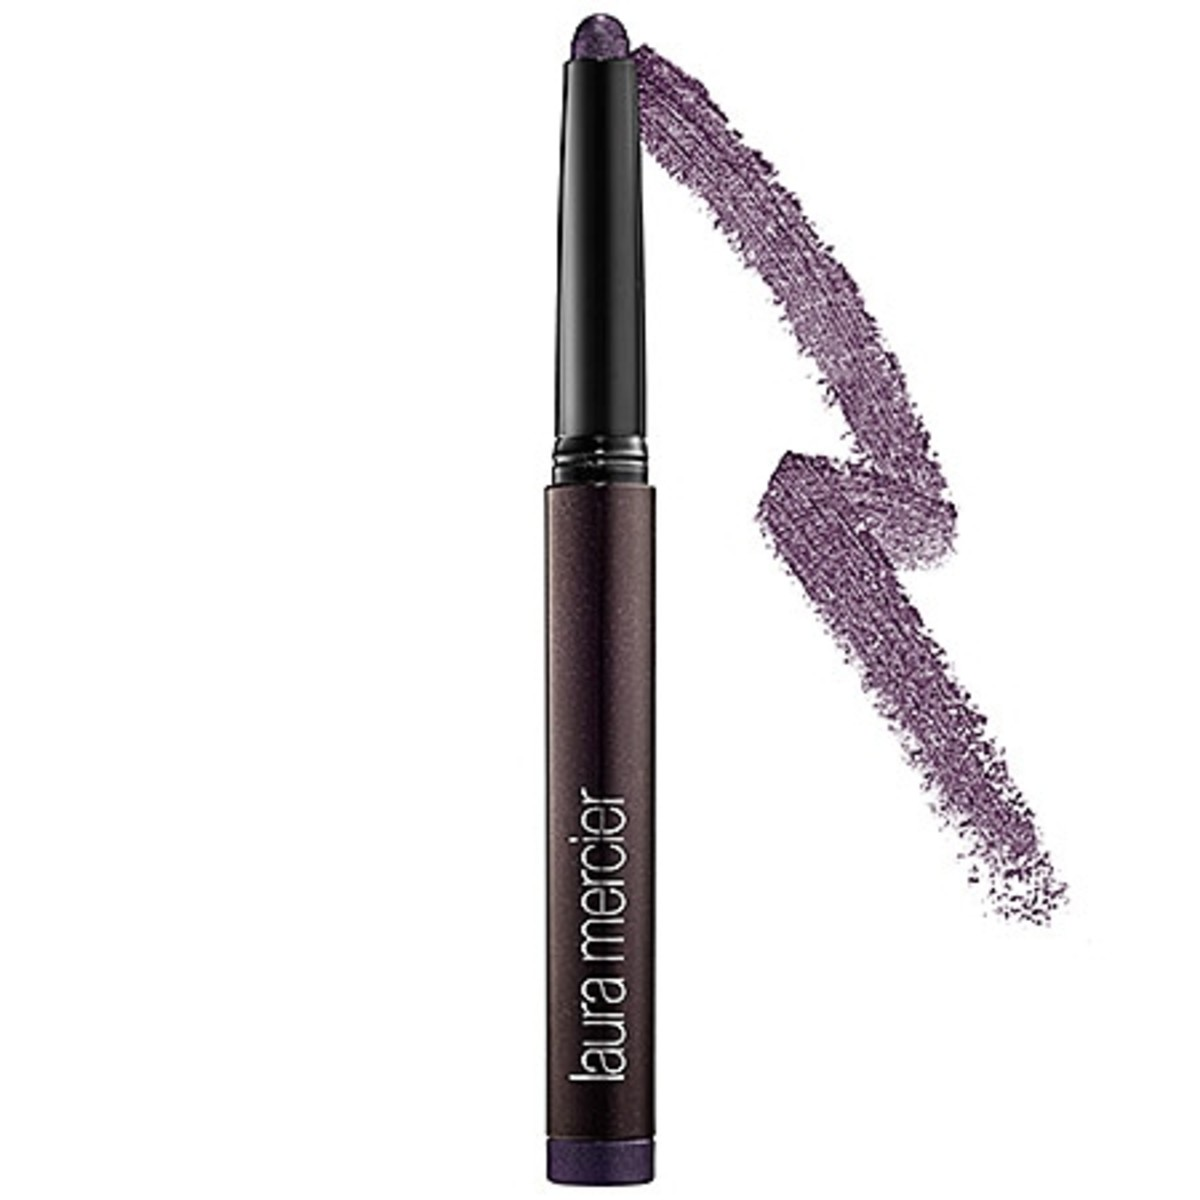 Laura Mercier Caviar Stick Eye Colour in Plum